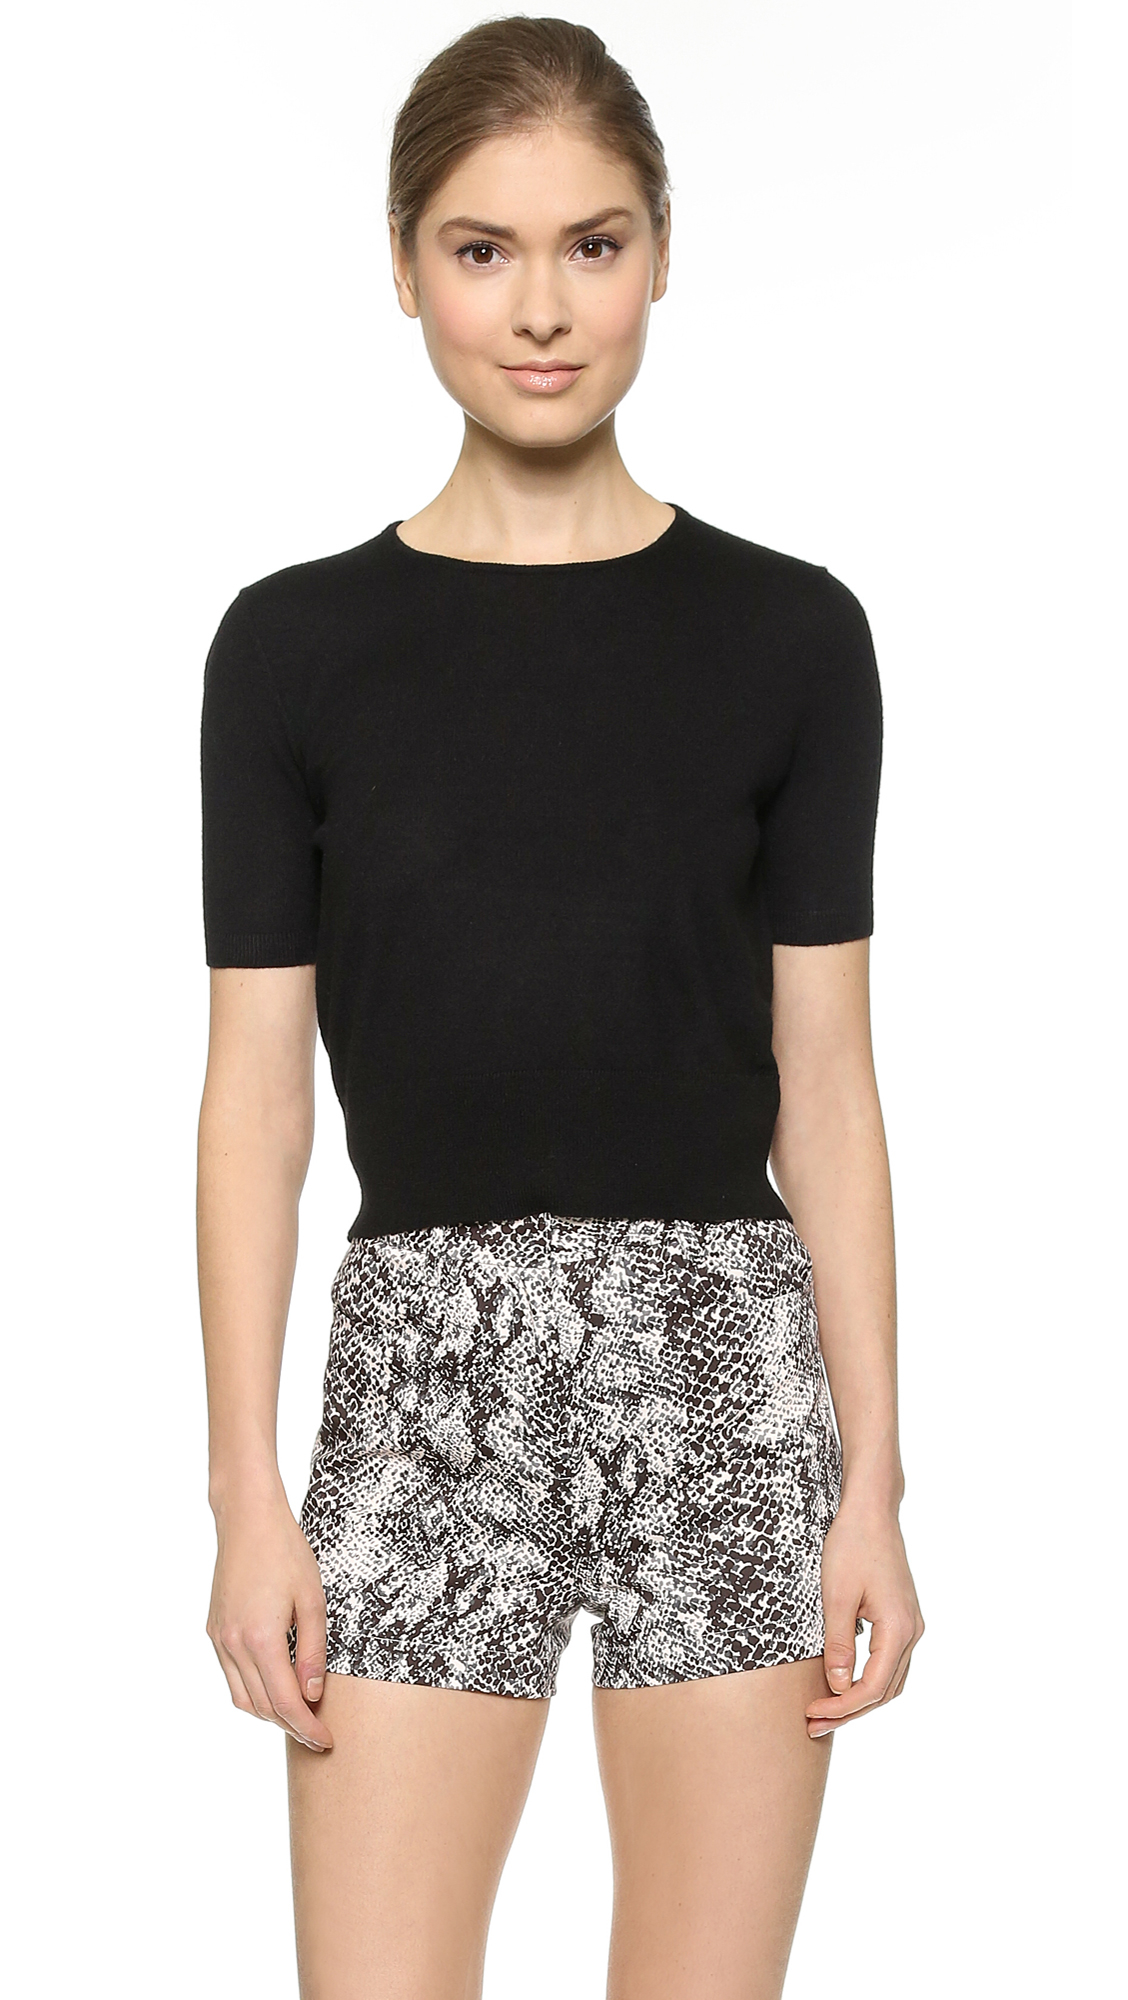 Tamara mellon Short Sleeve Cashmere Sweater - Black in Black | Lyst